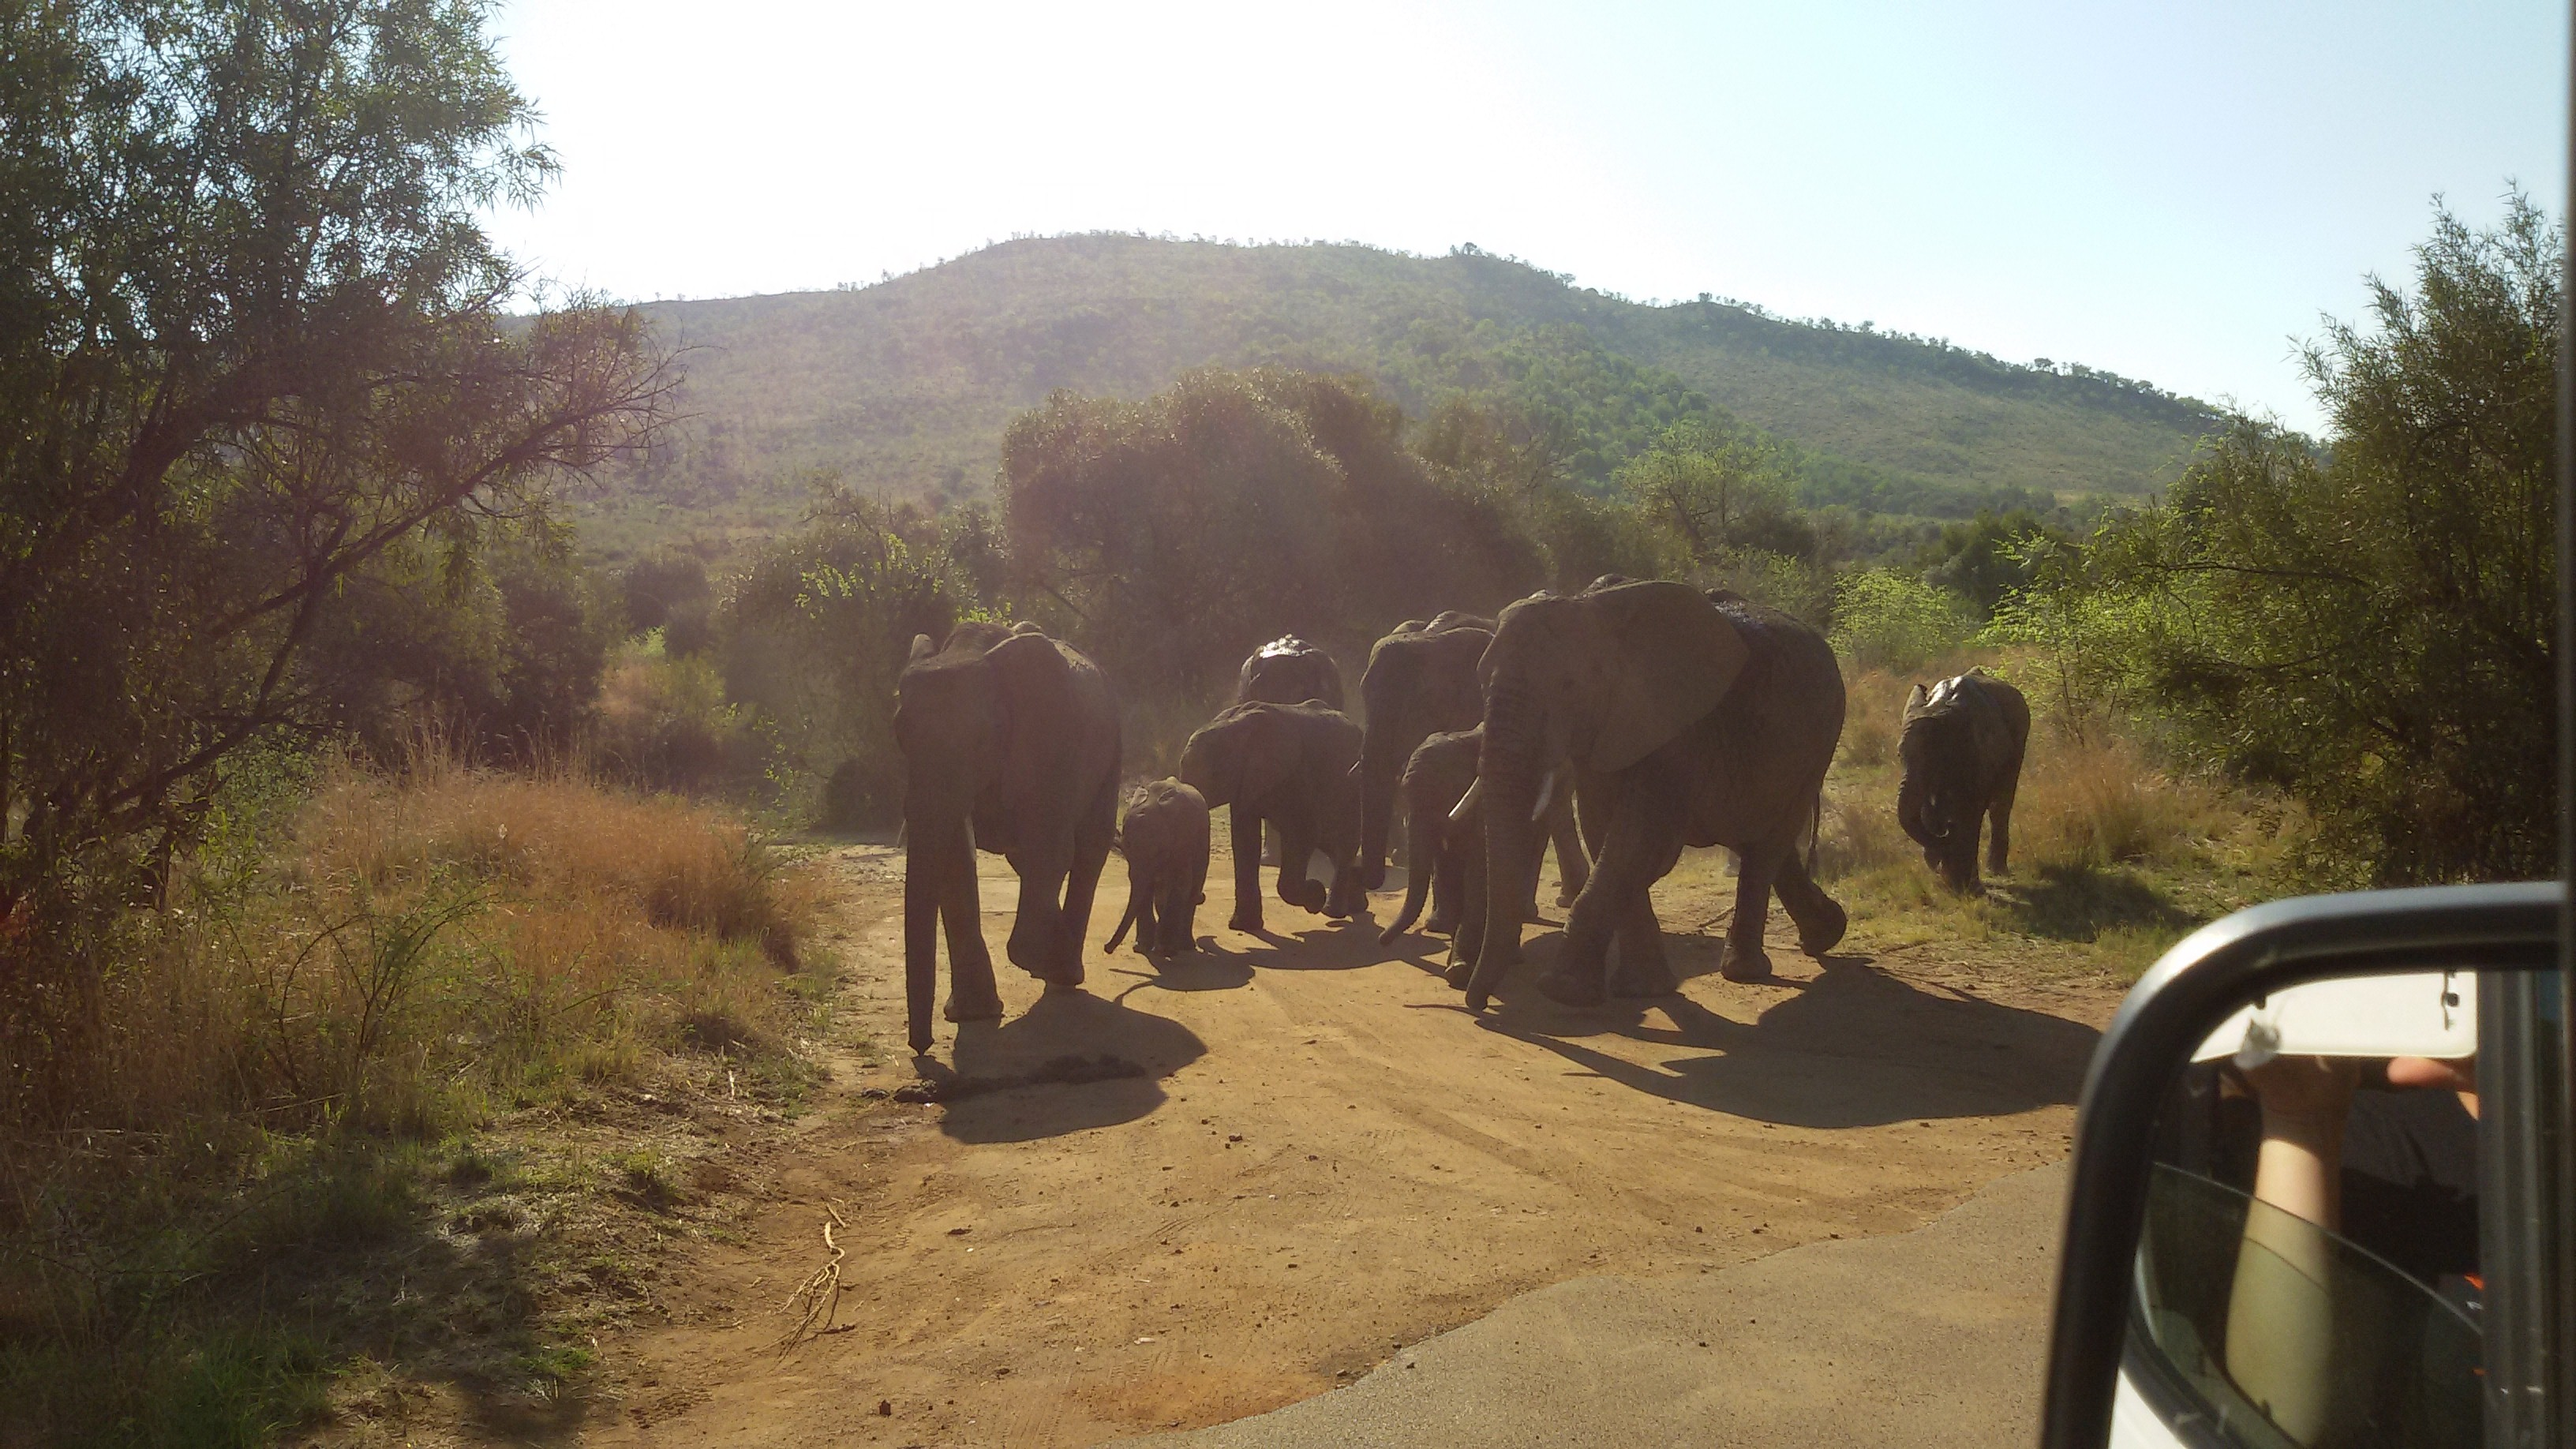 Elefanten in Pilanesberg - SafariScout Südafrika Wildlife Tour